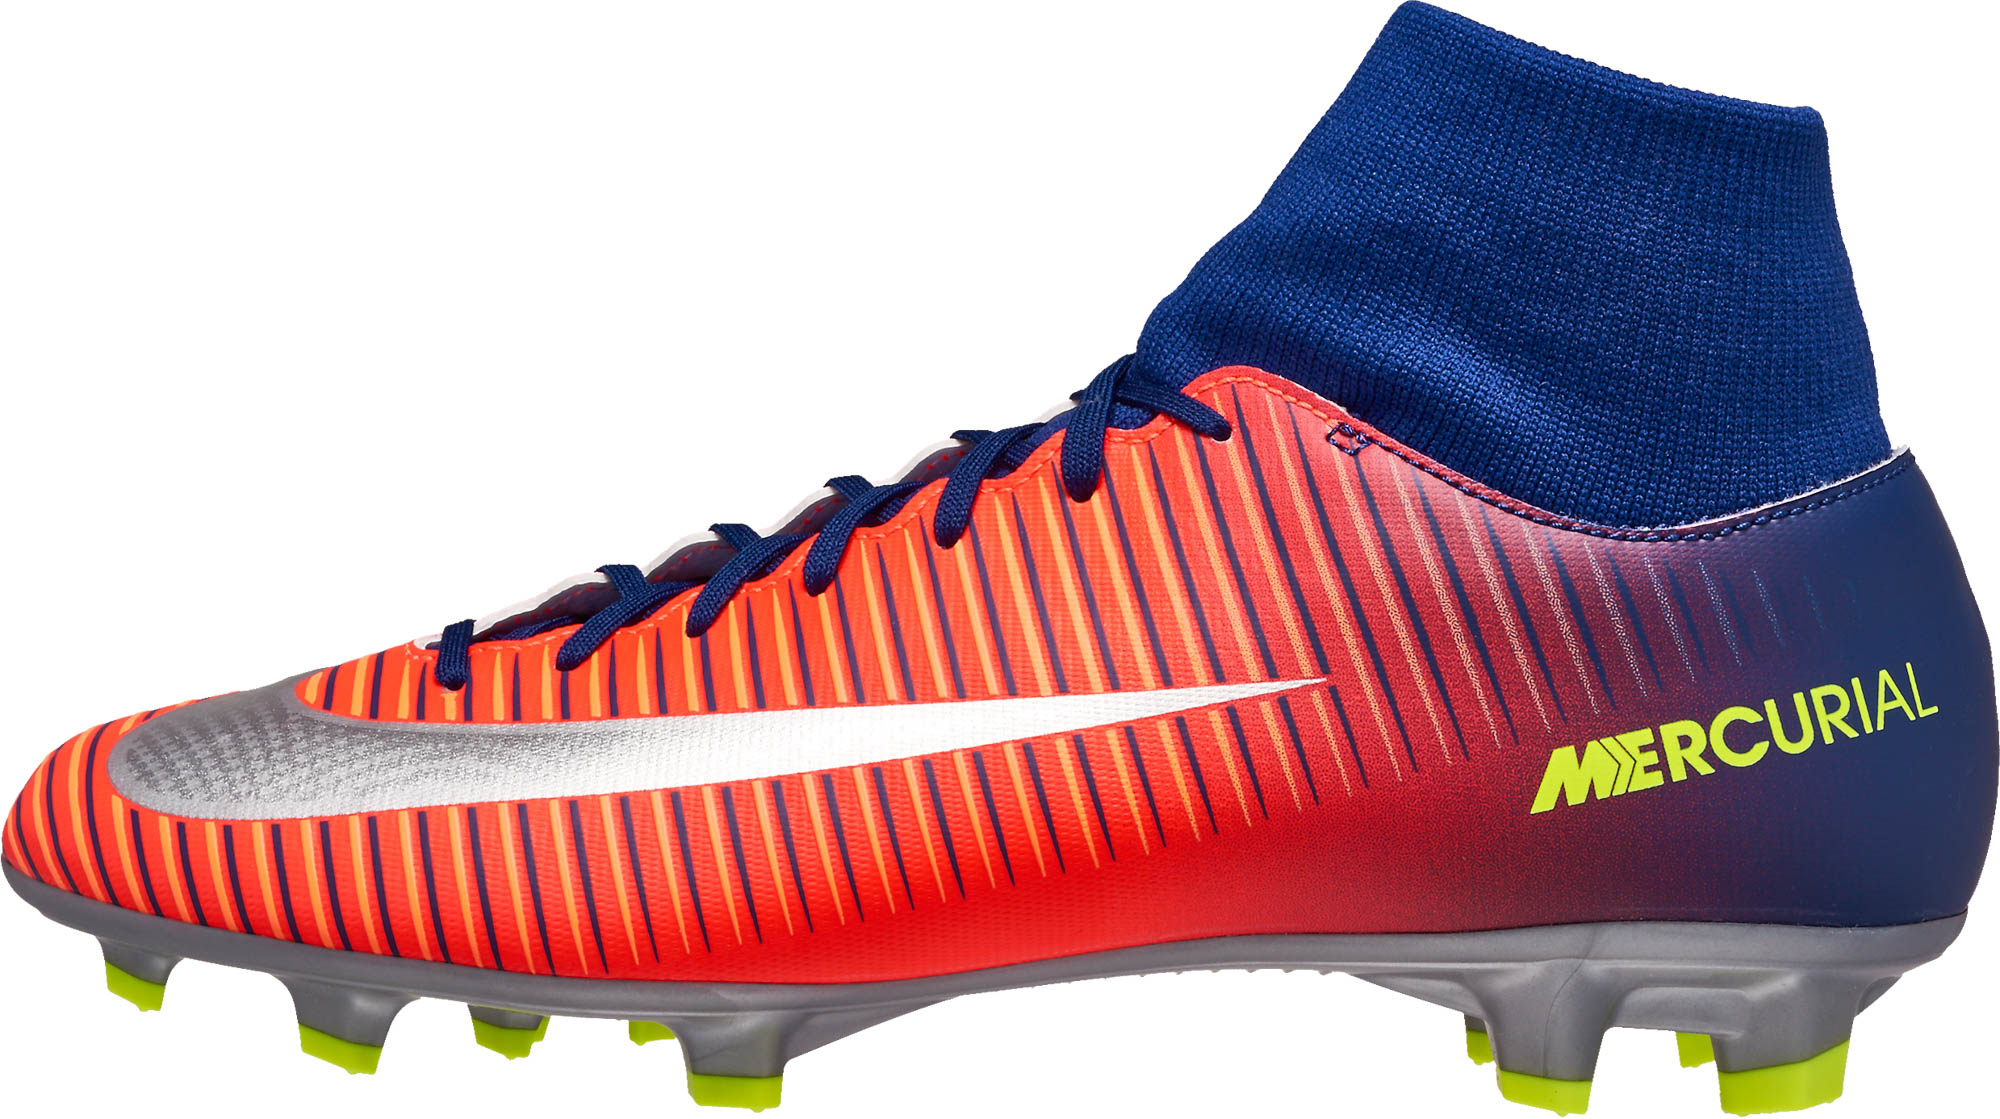 Nike Mercurial Victory VI DF FG – Deep Royal Blue/Chrome